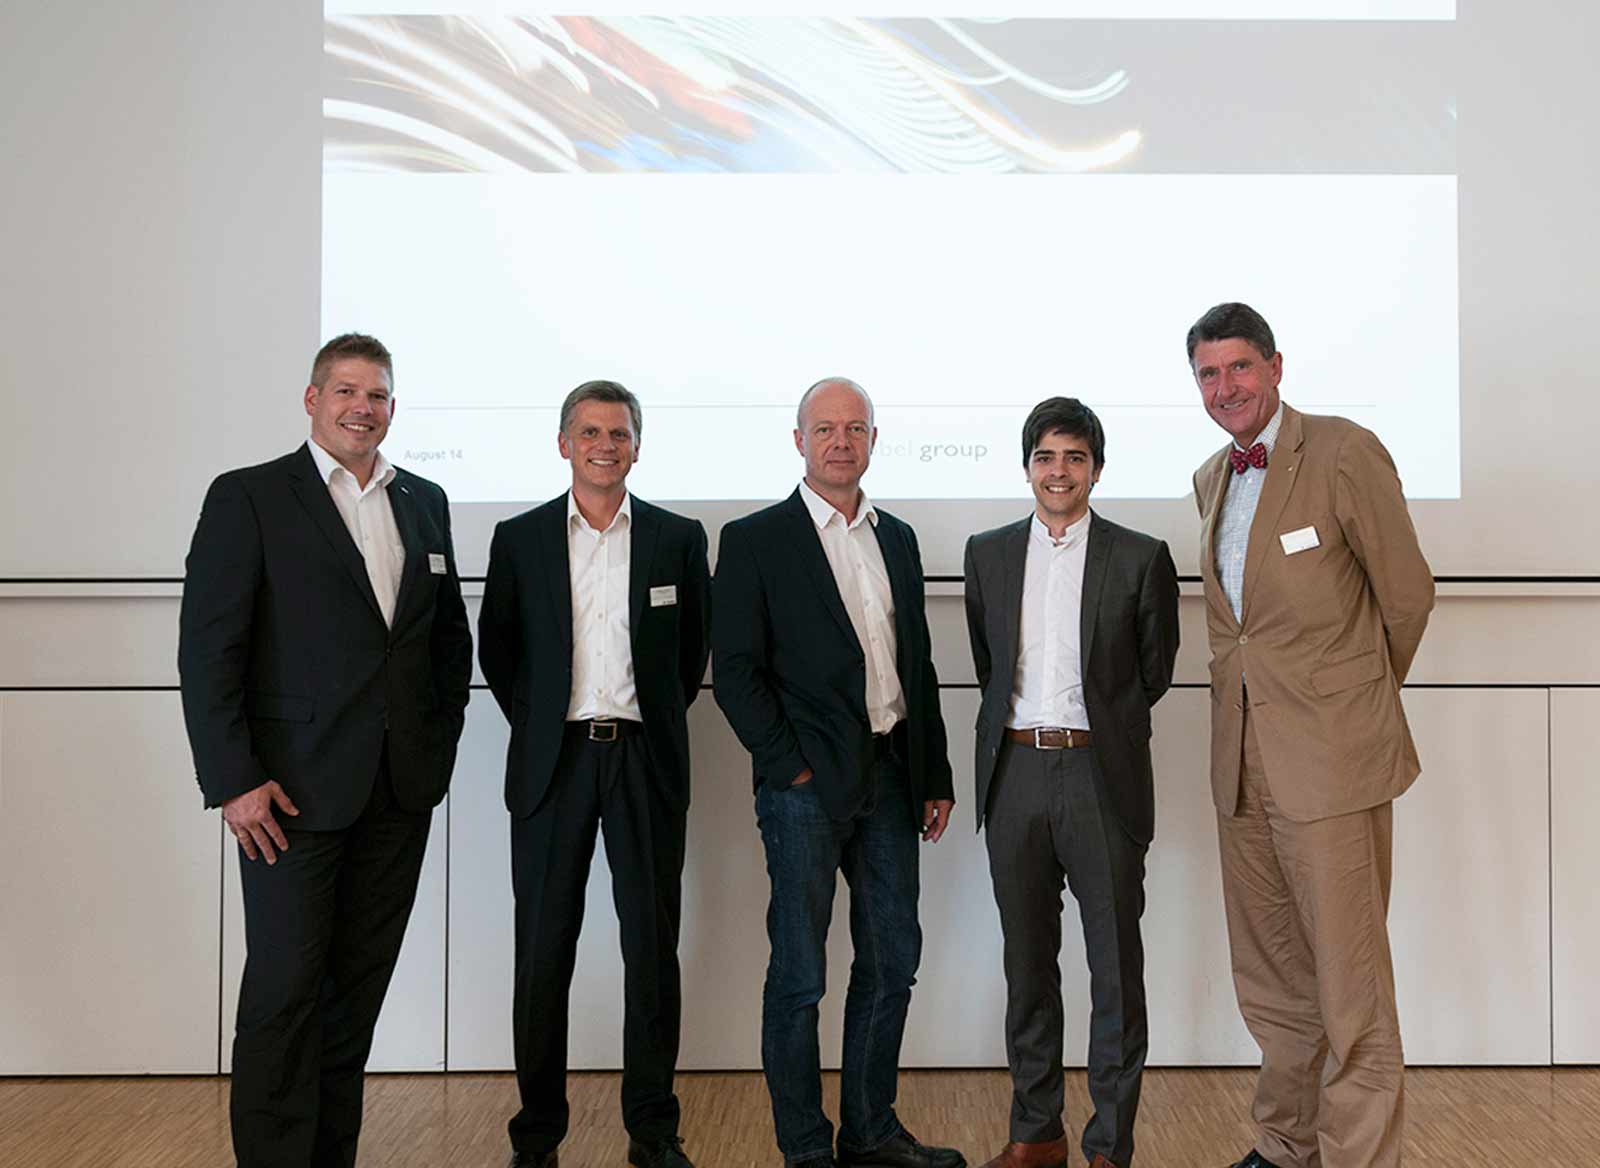 Architect Matthias Wehrle, Managing Director, ATP kfp architects engineers, Zurich (2nd from left) and ATP CEO and Chairman of IG Lebenszyklus Christoph Achammer (right), Photo: Zumtobel Group